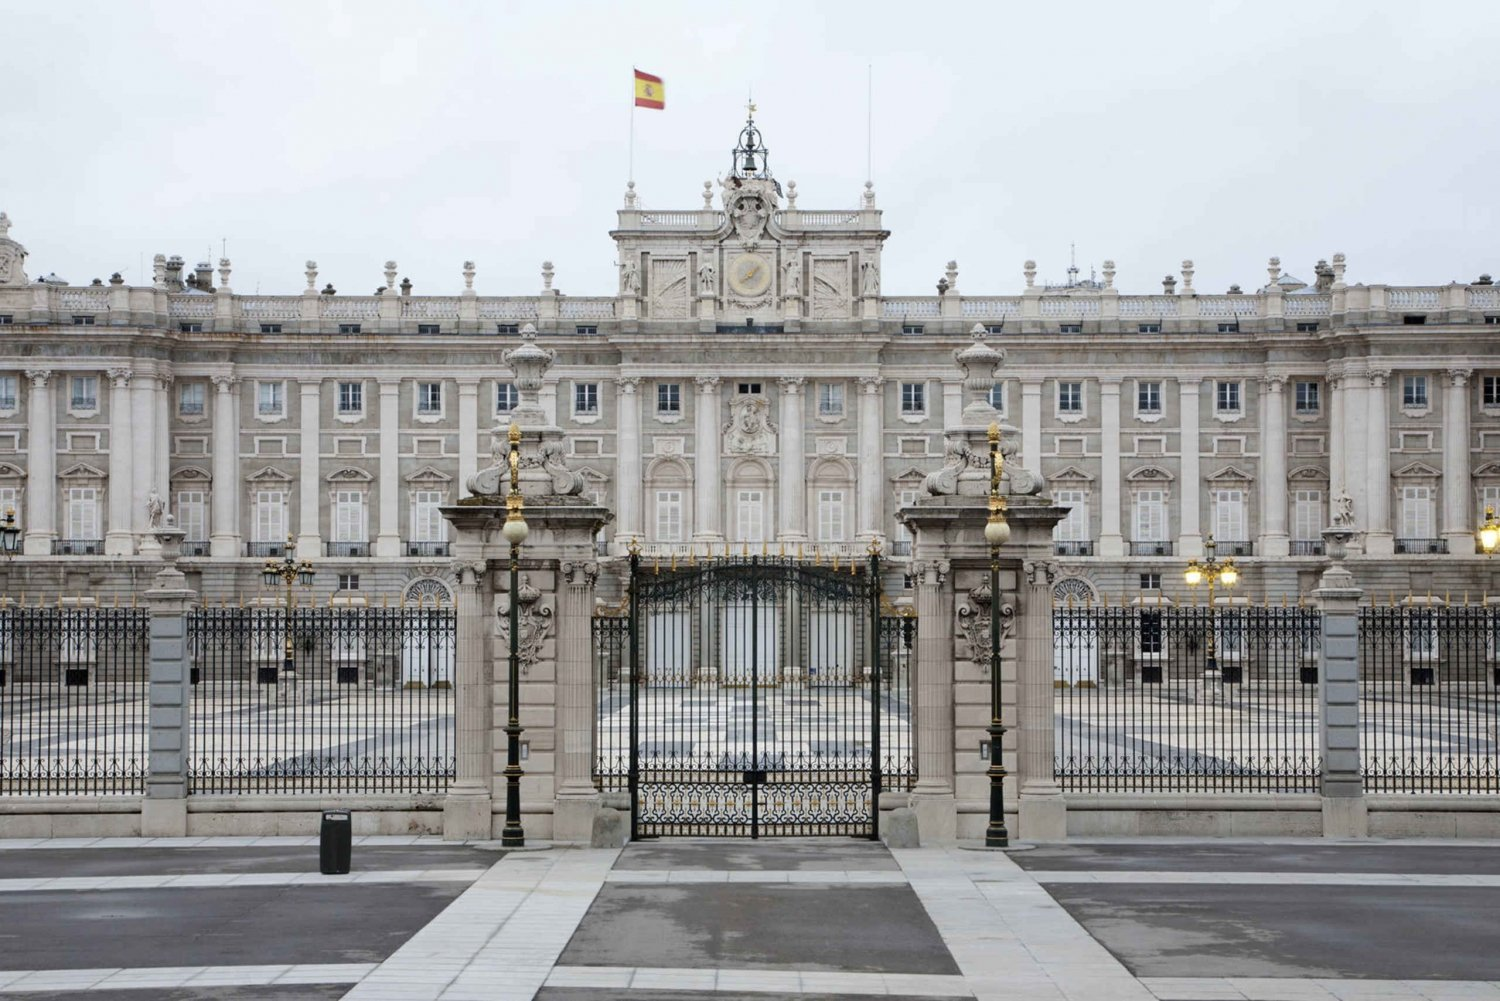 Guided Visit to the Royal Palace